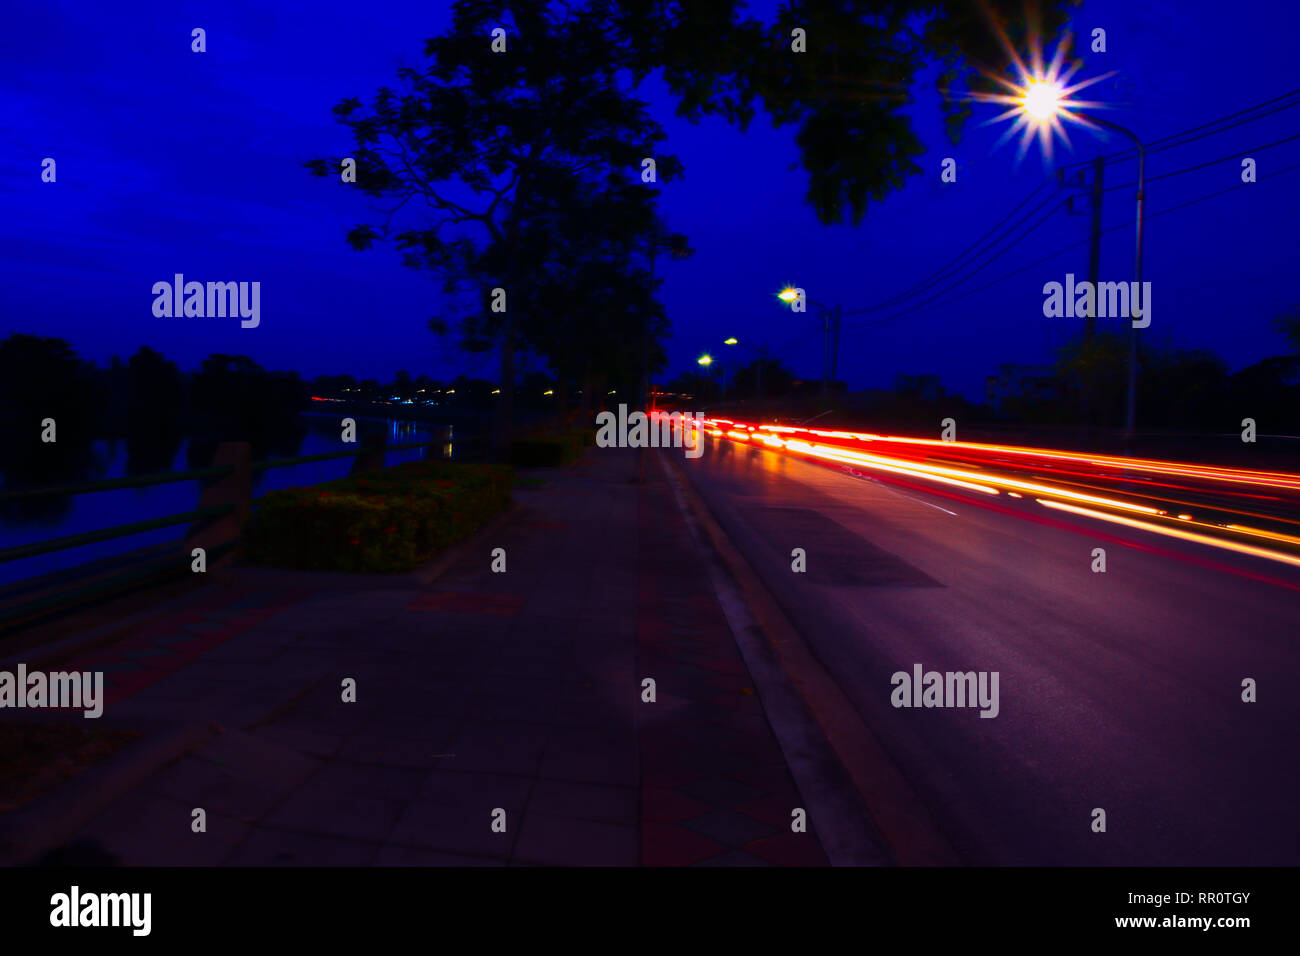 Car Lights At Night In City And Headlights Long Exposure With Copy Space Add Text Stock Photo Alamy